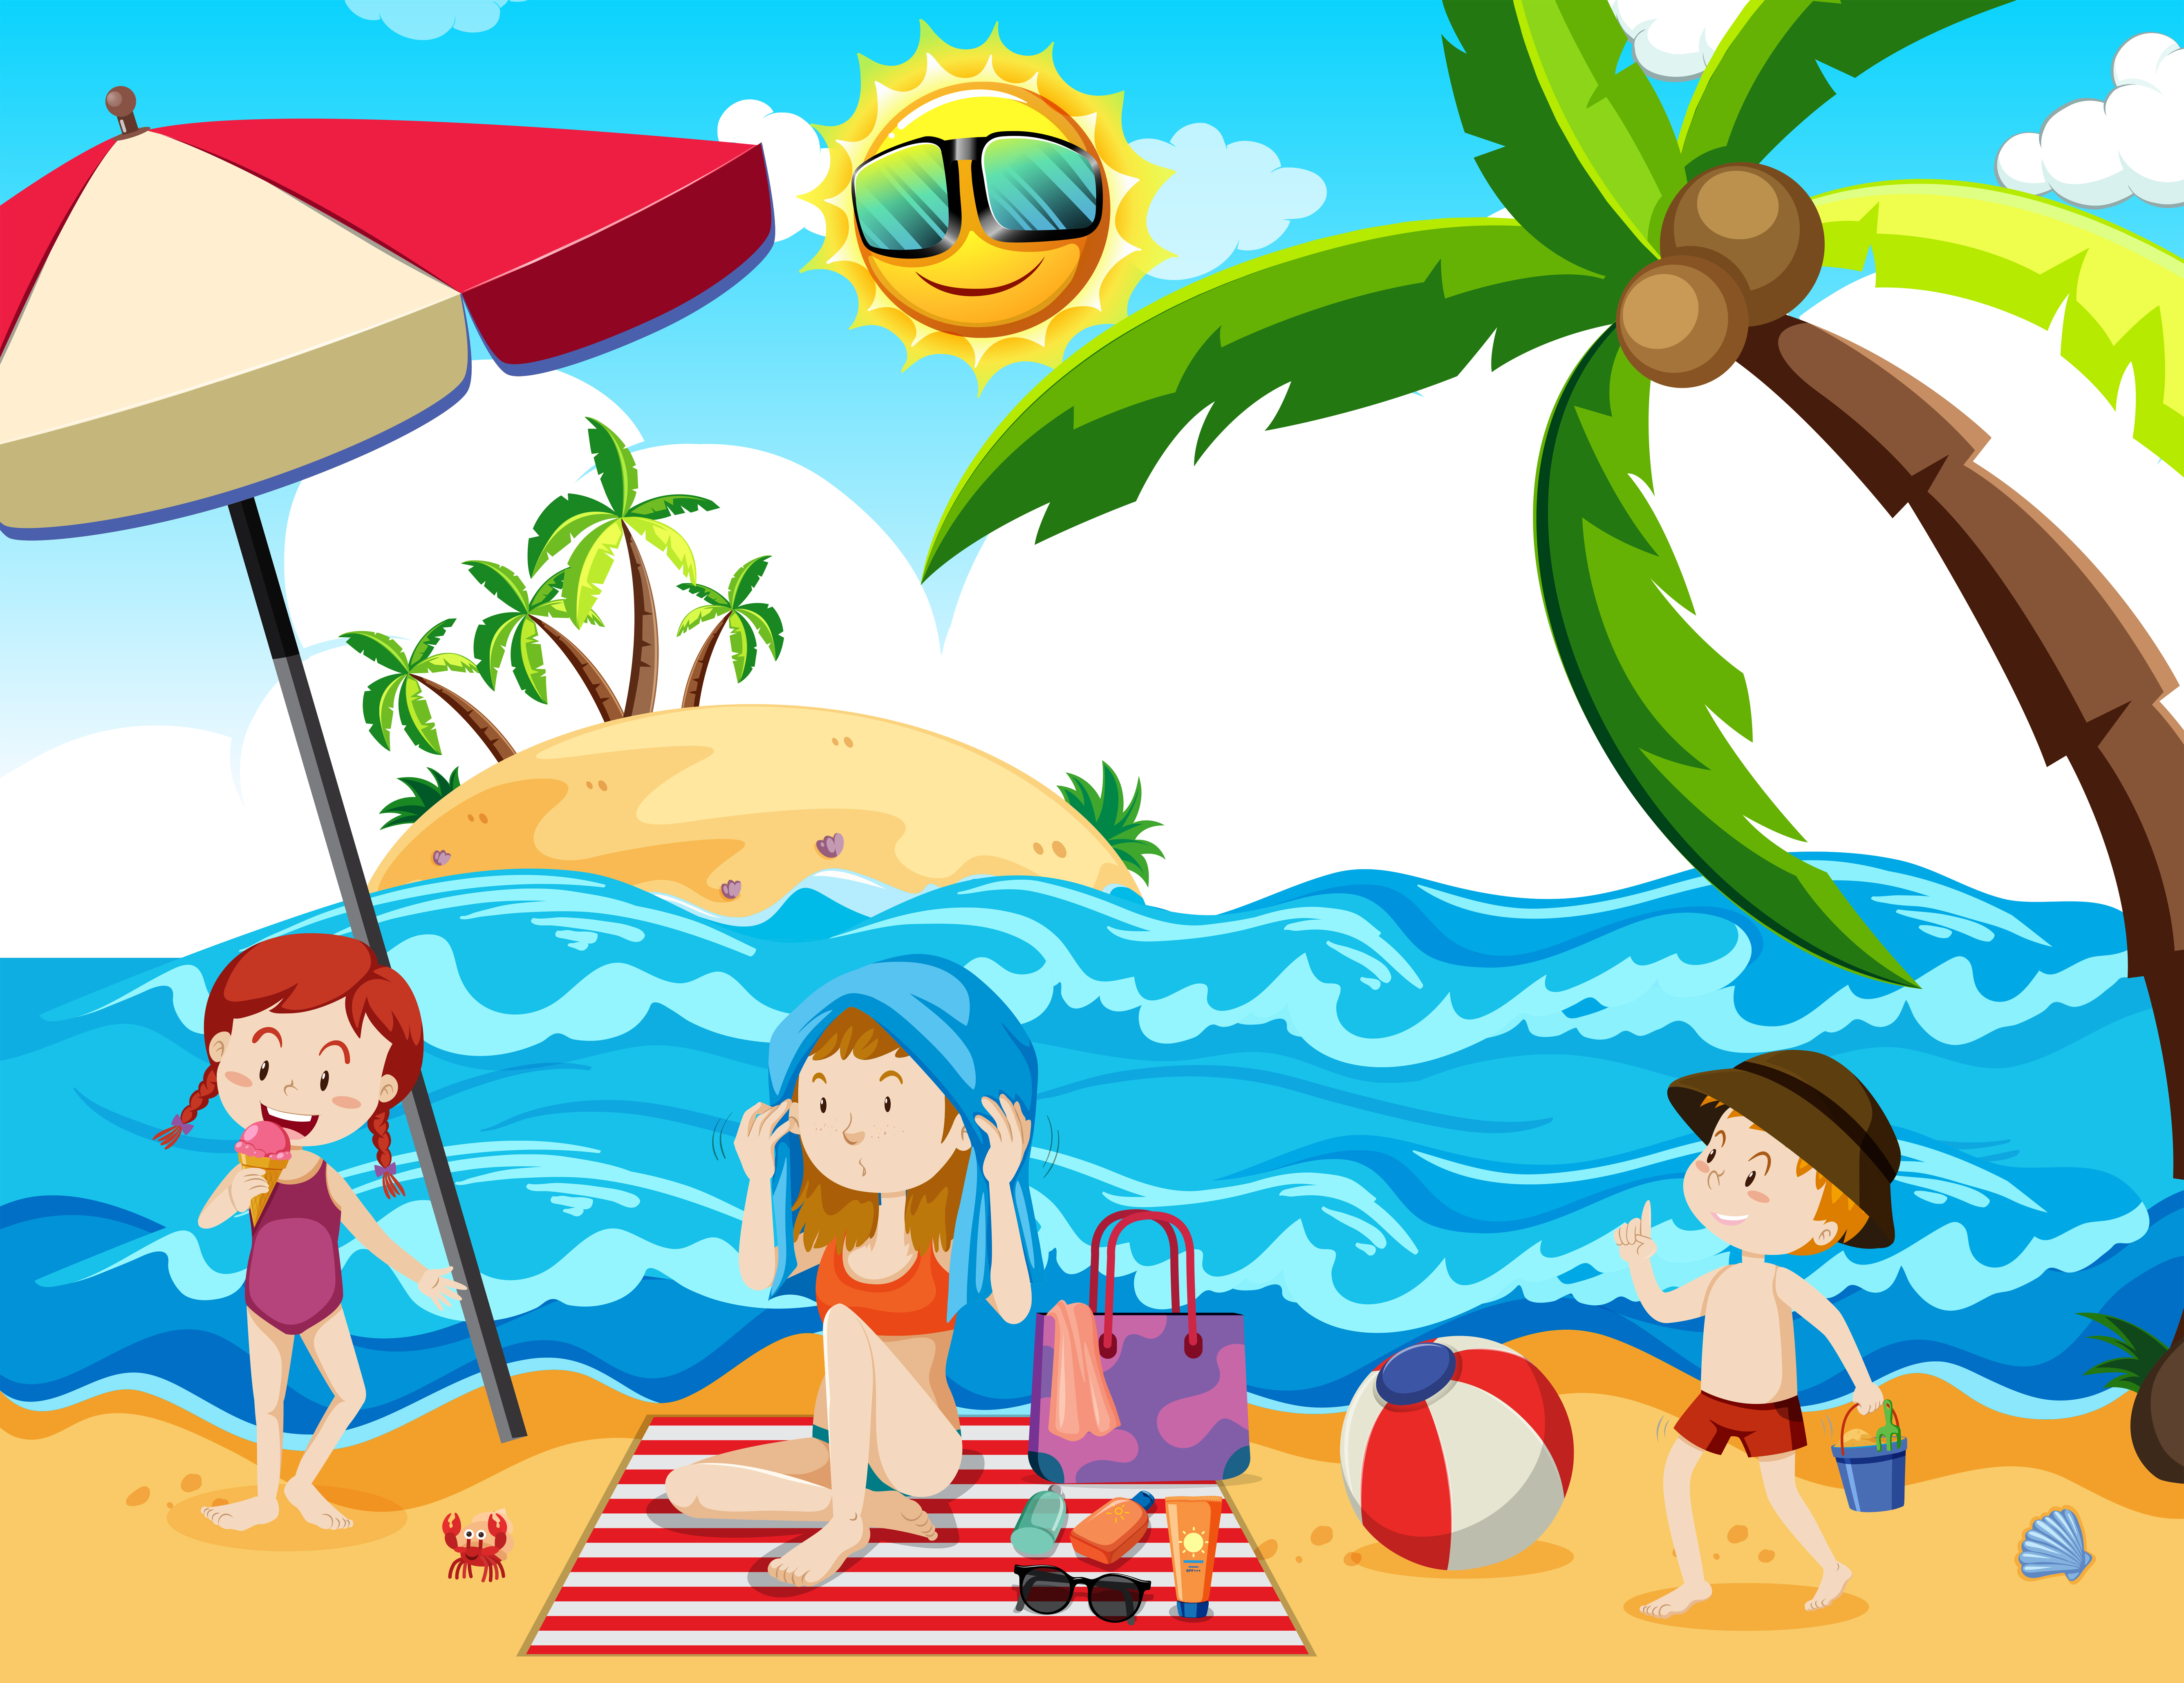 A Family Summer Holiday at Beach - Download Free Vectors ...